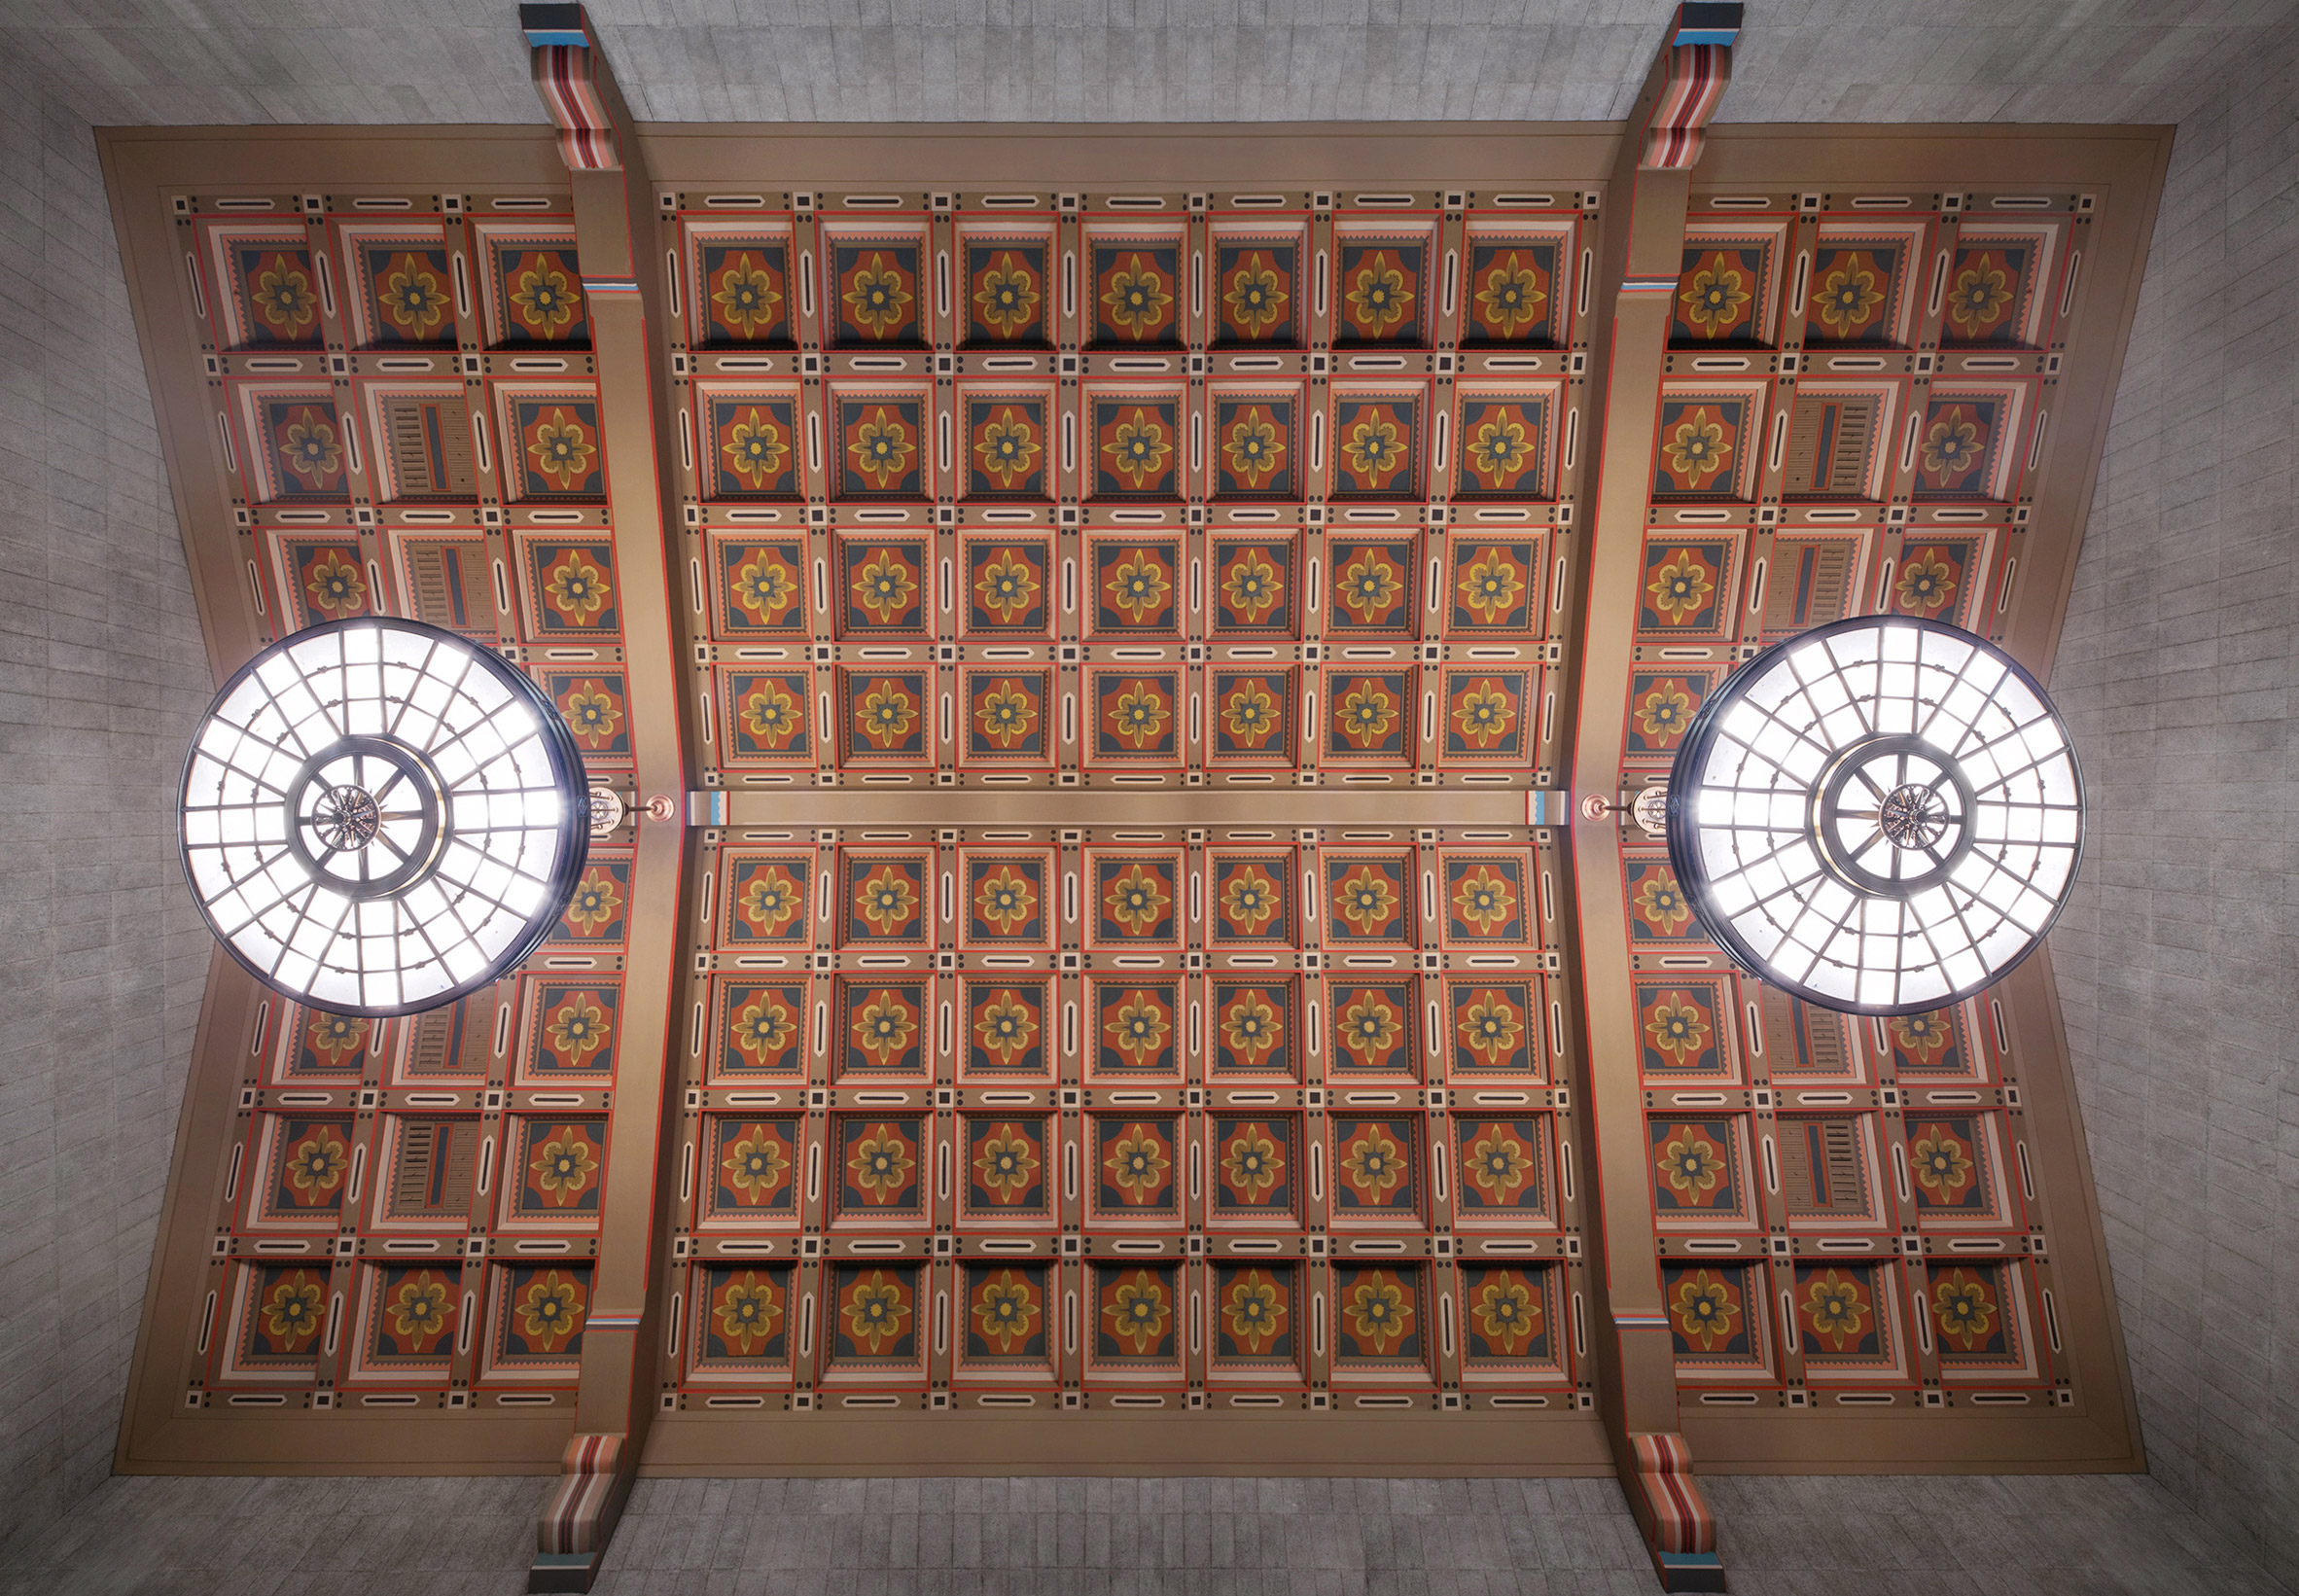 David Rockwell was informed by Union Station's design features